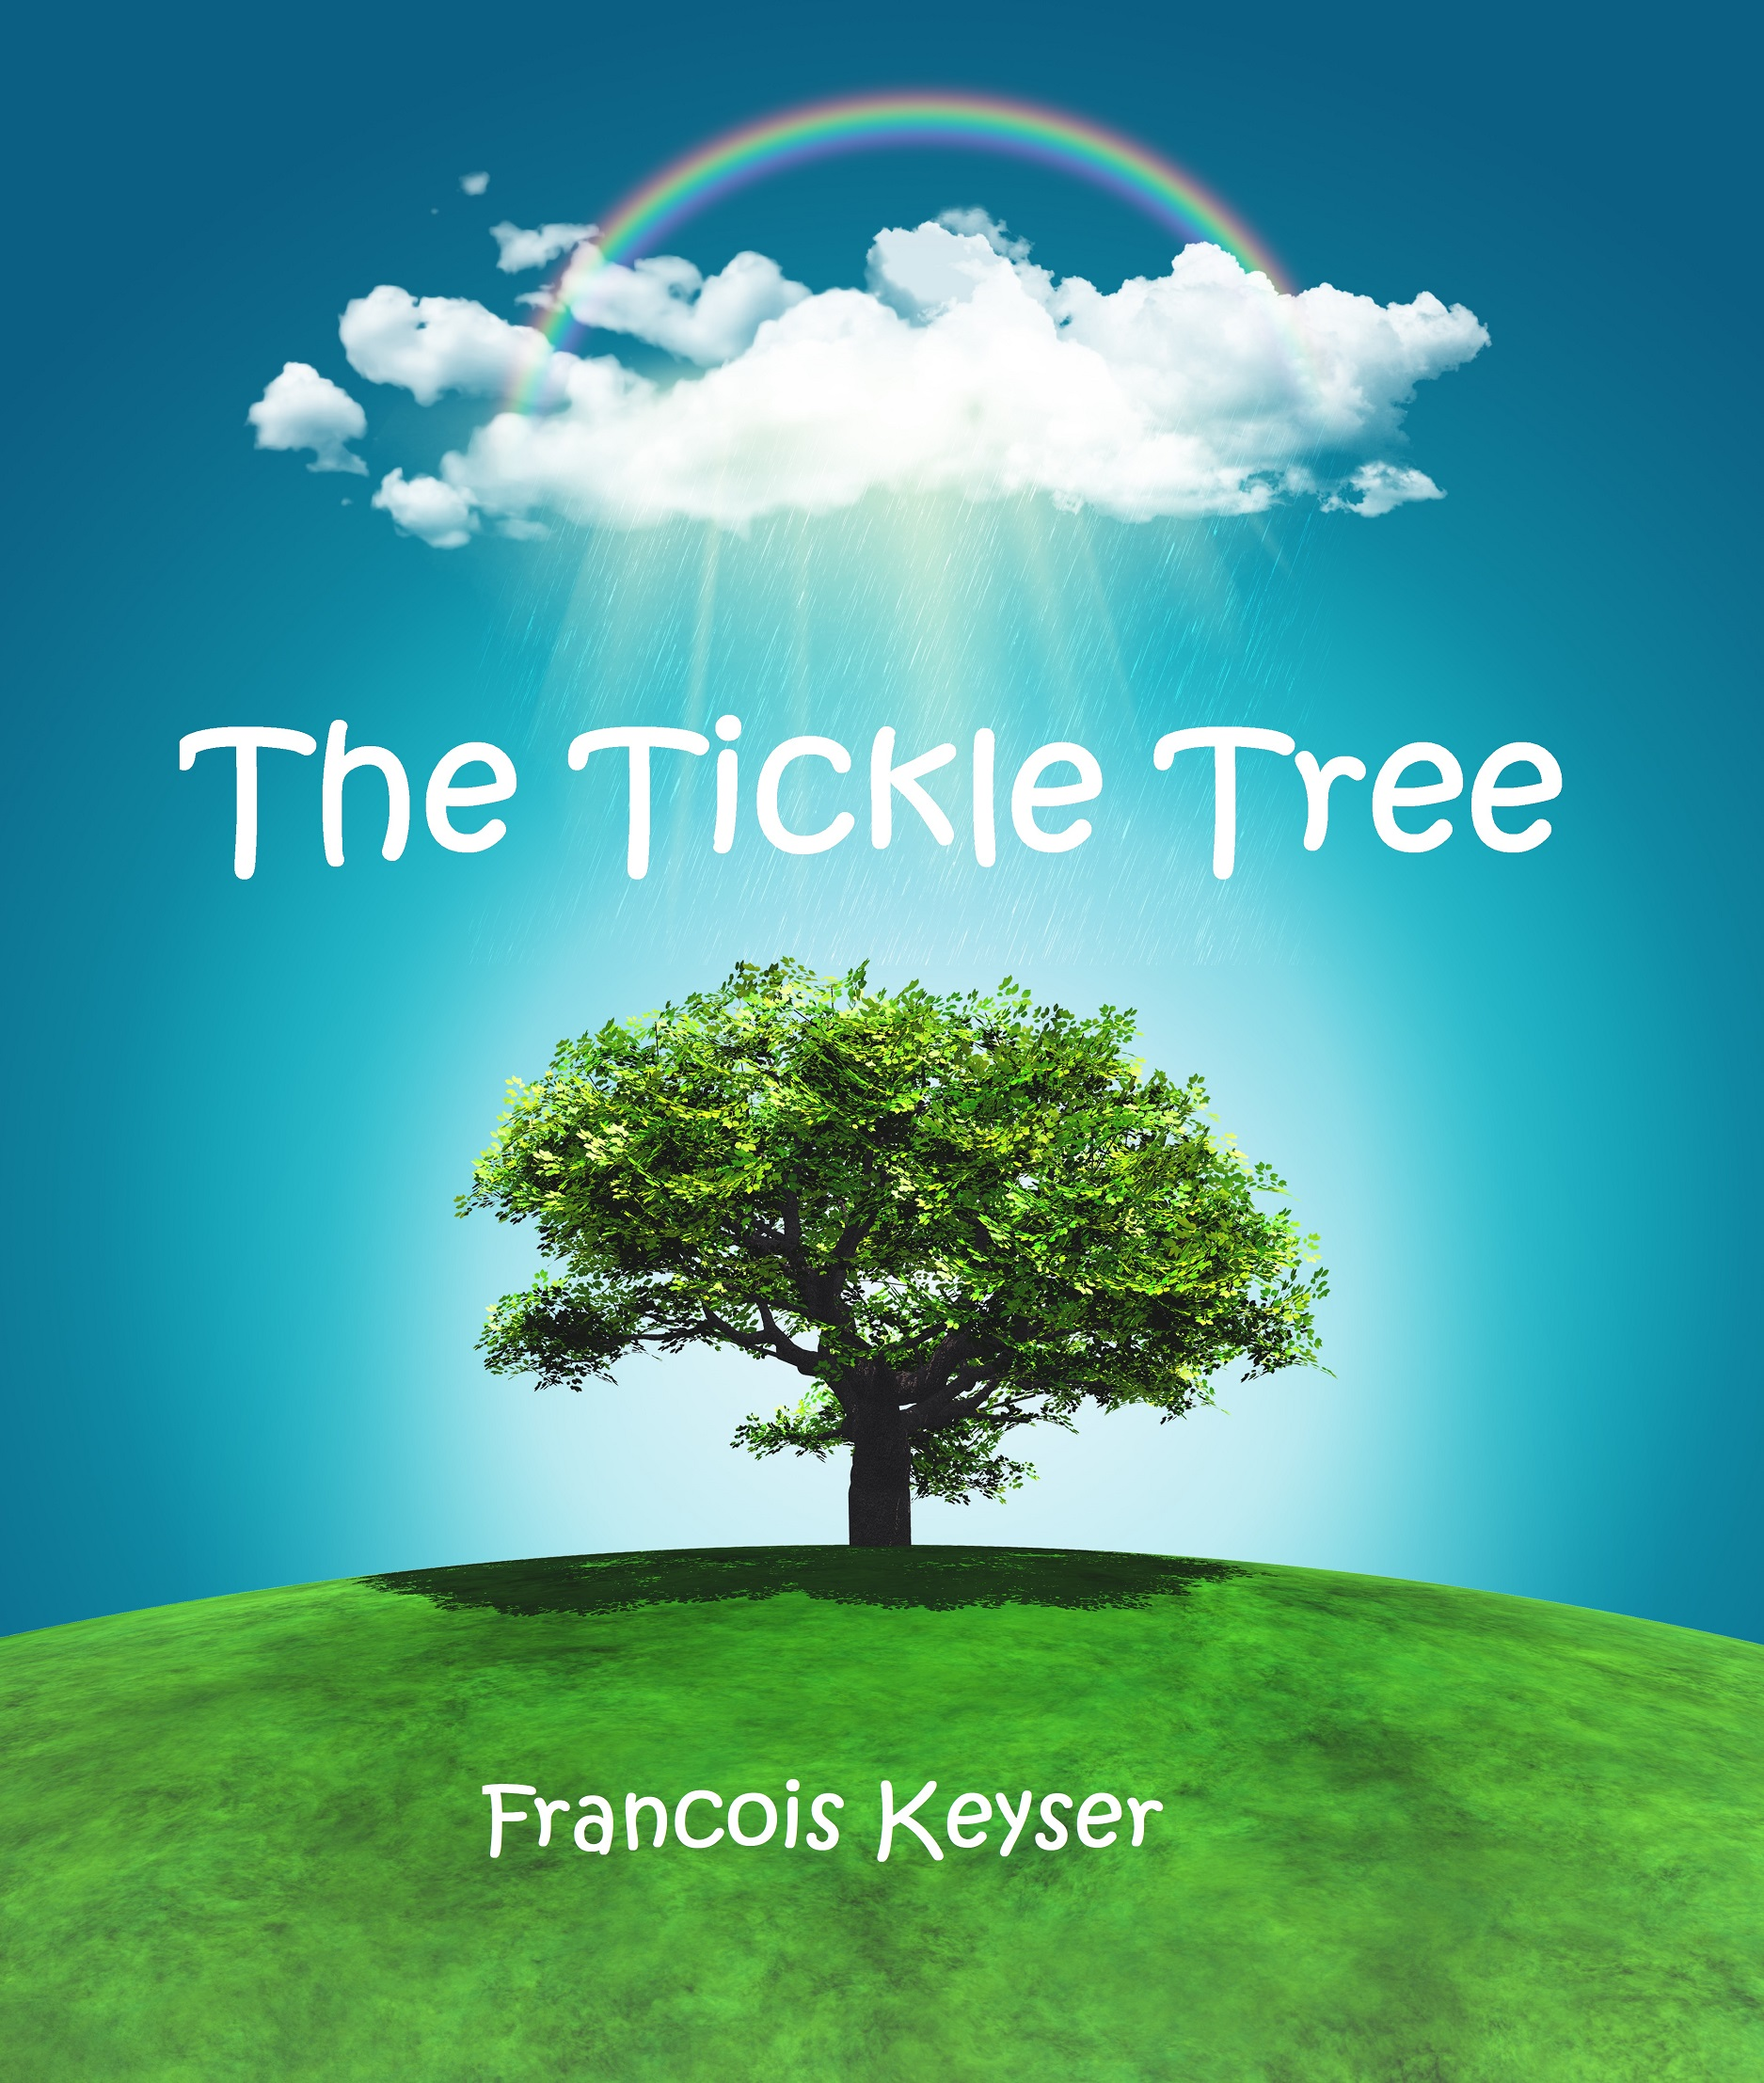 The Tickle Tree